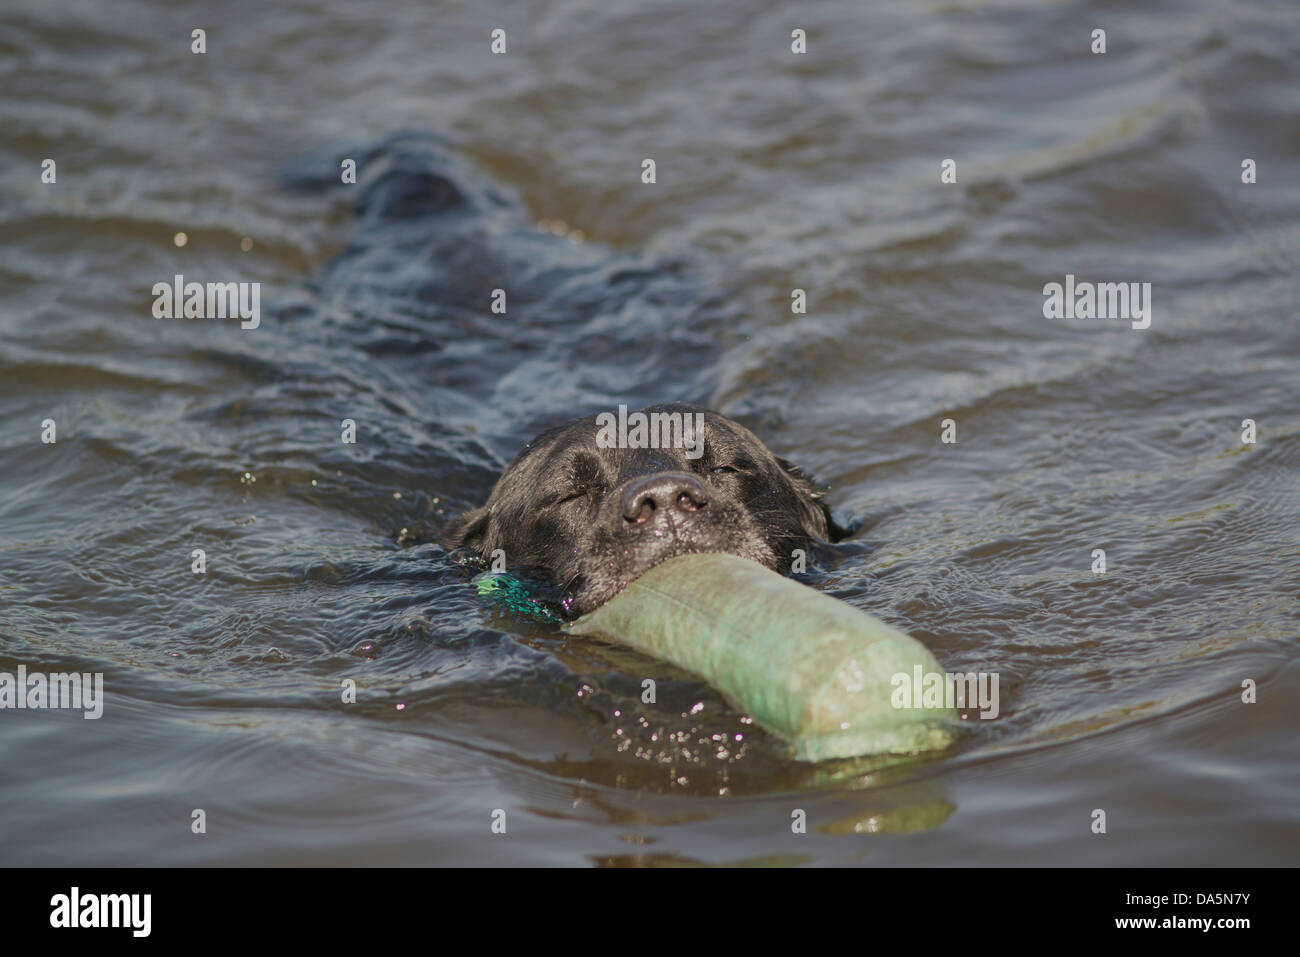 labrador retrieves floating dummy from pond - Stock Image